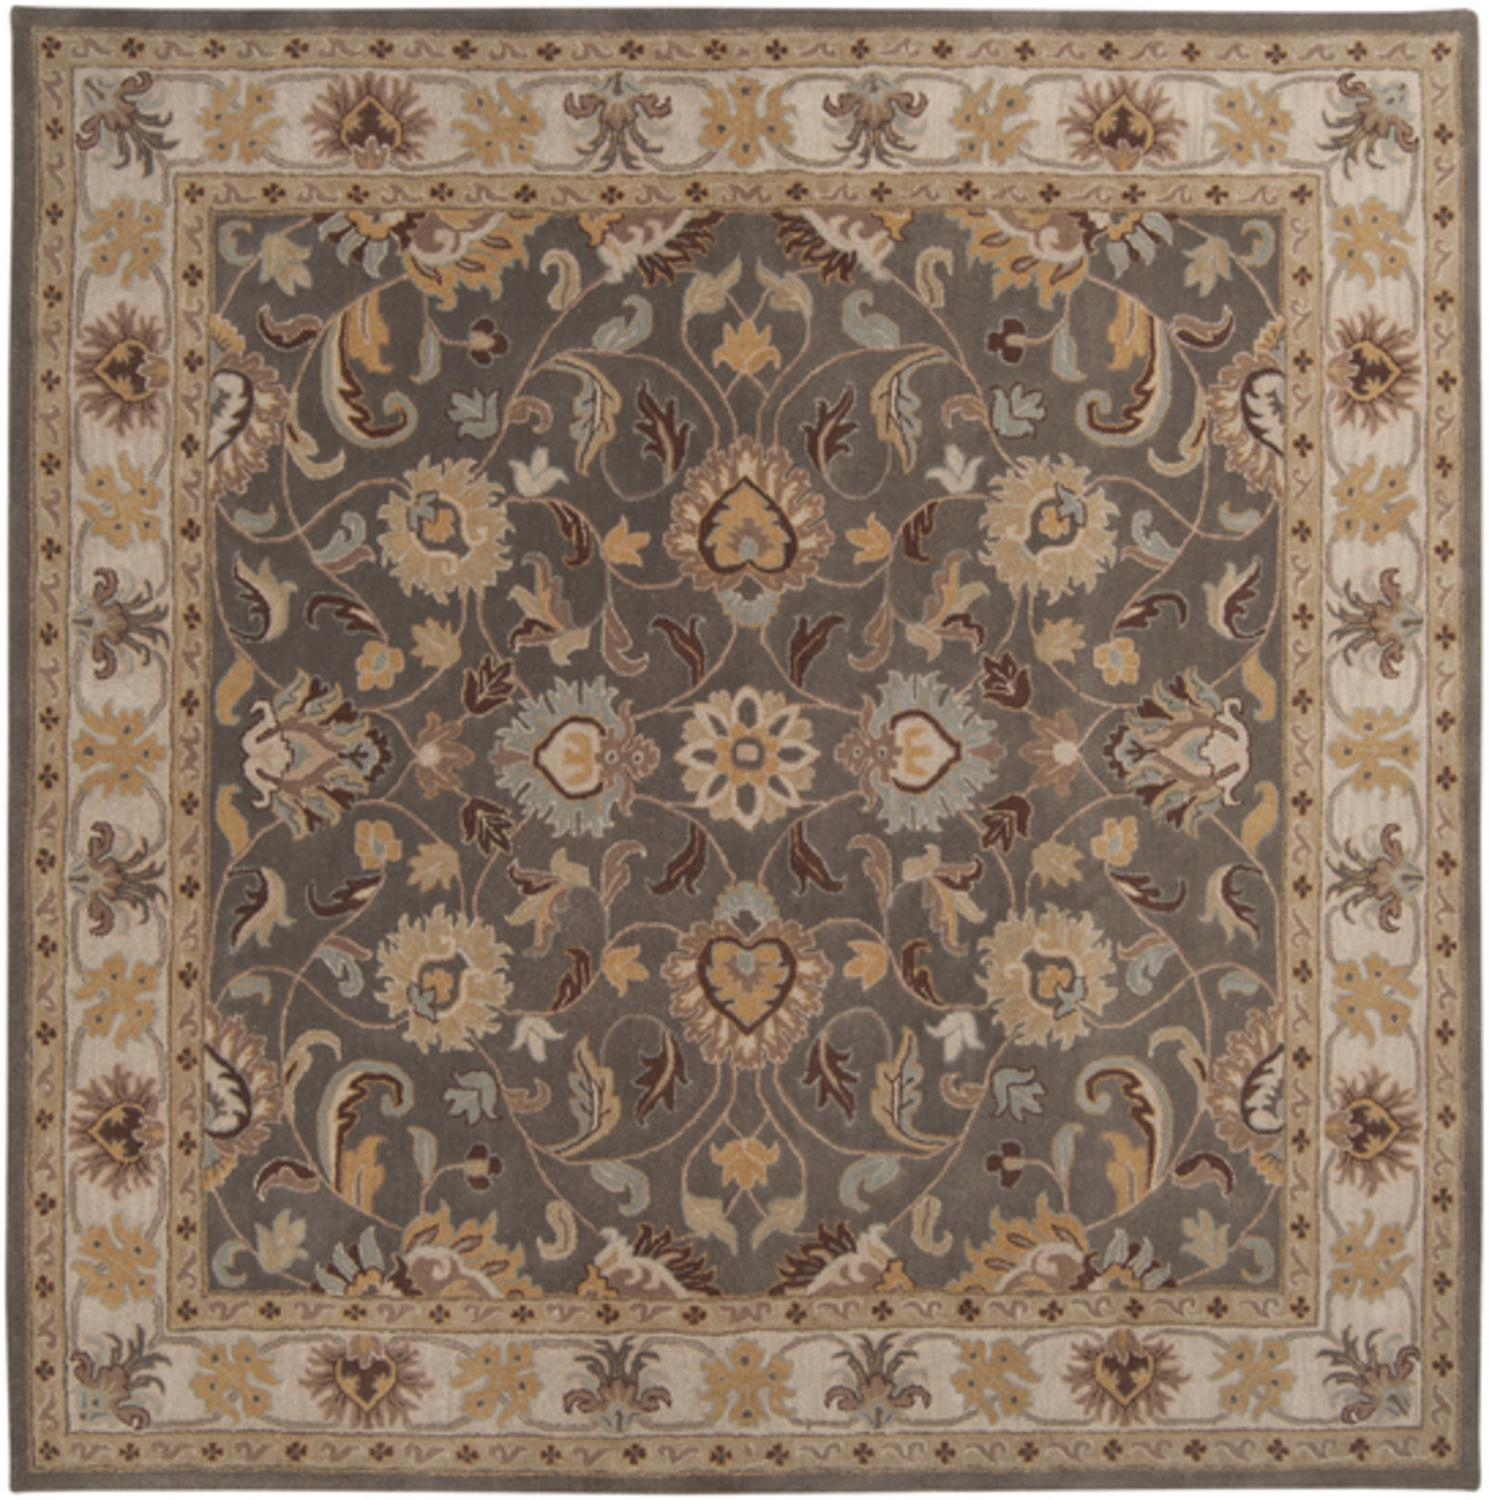 6' x 6' Augustus Heather Gray and Taupe Hand Tufted Wool Square Area Throw Rug